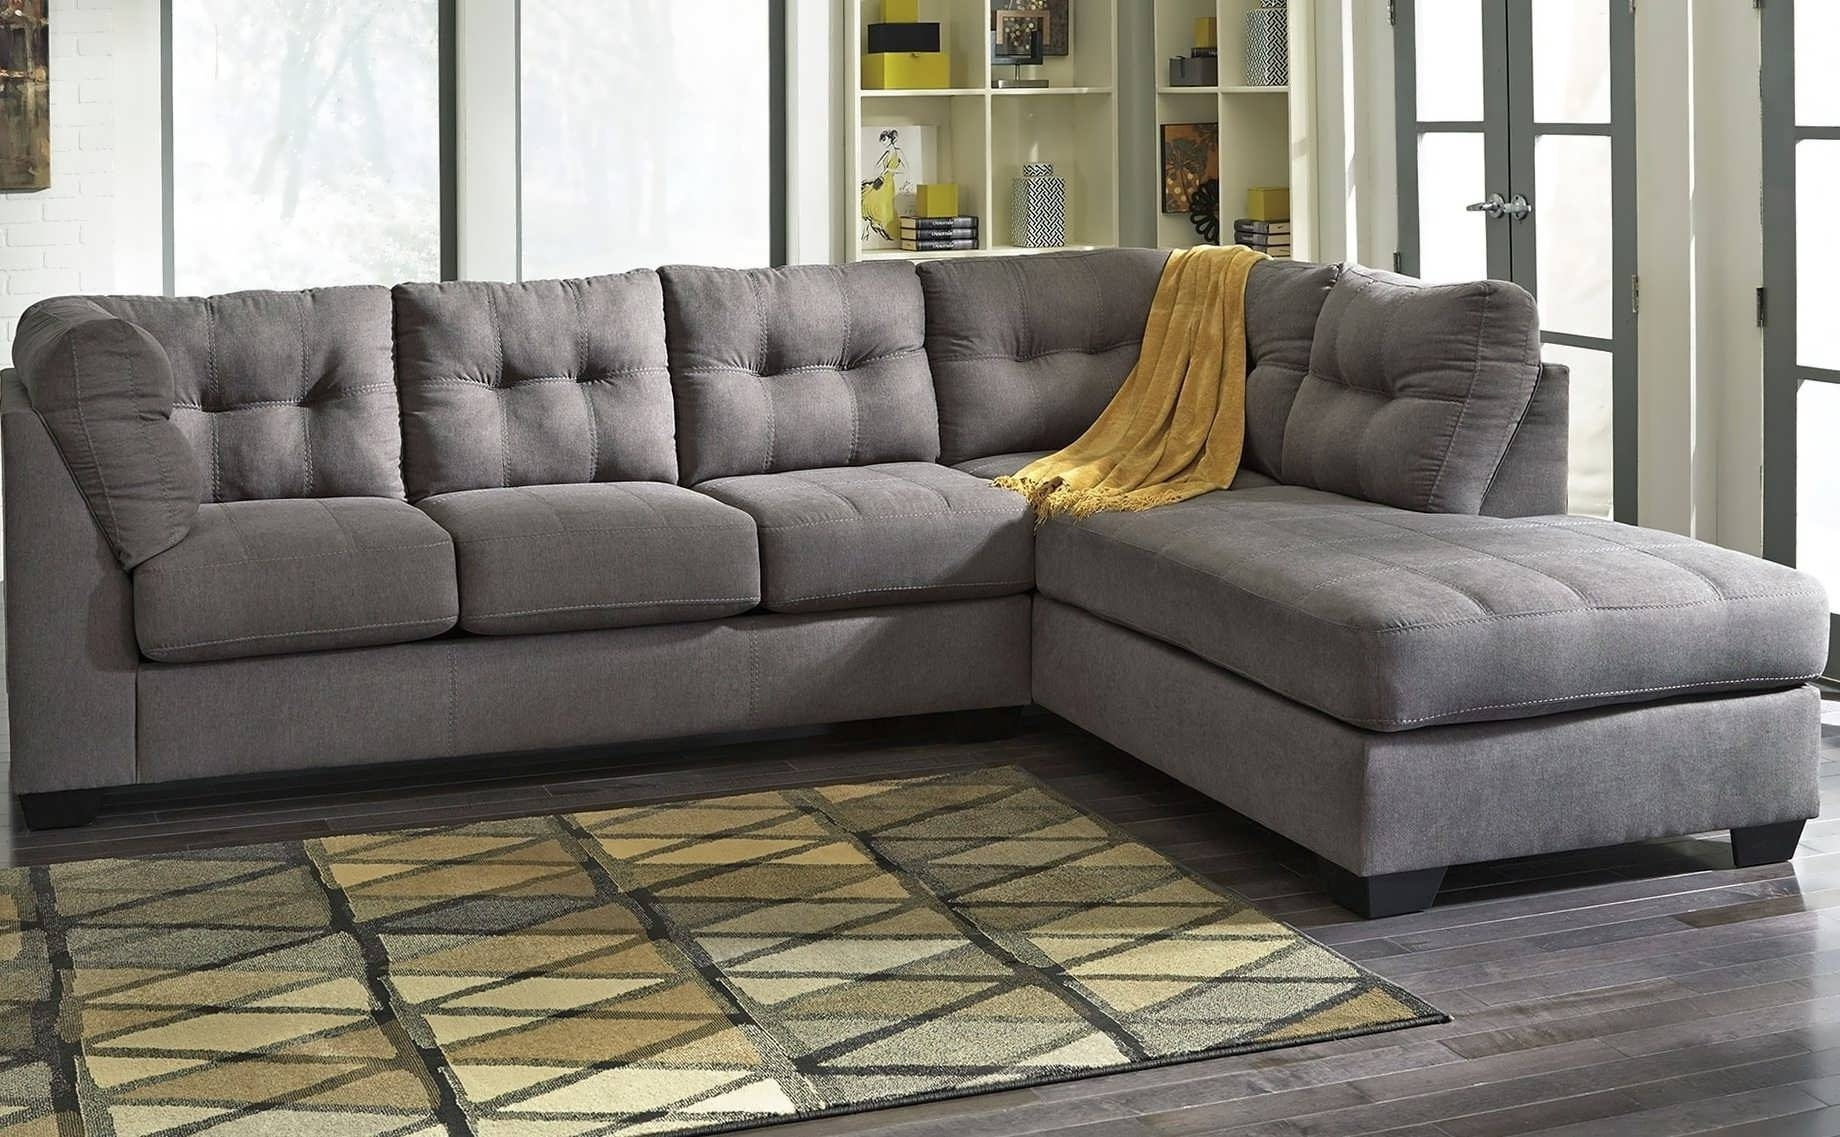 Gray Chaise Sofas Within Most Popular Sofa : Gray Sectional Sleeper Sectional Oversized Sectionals Grey (View 14 of 15)